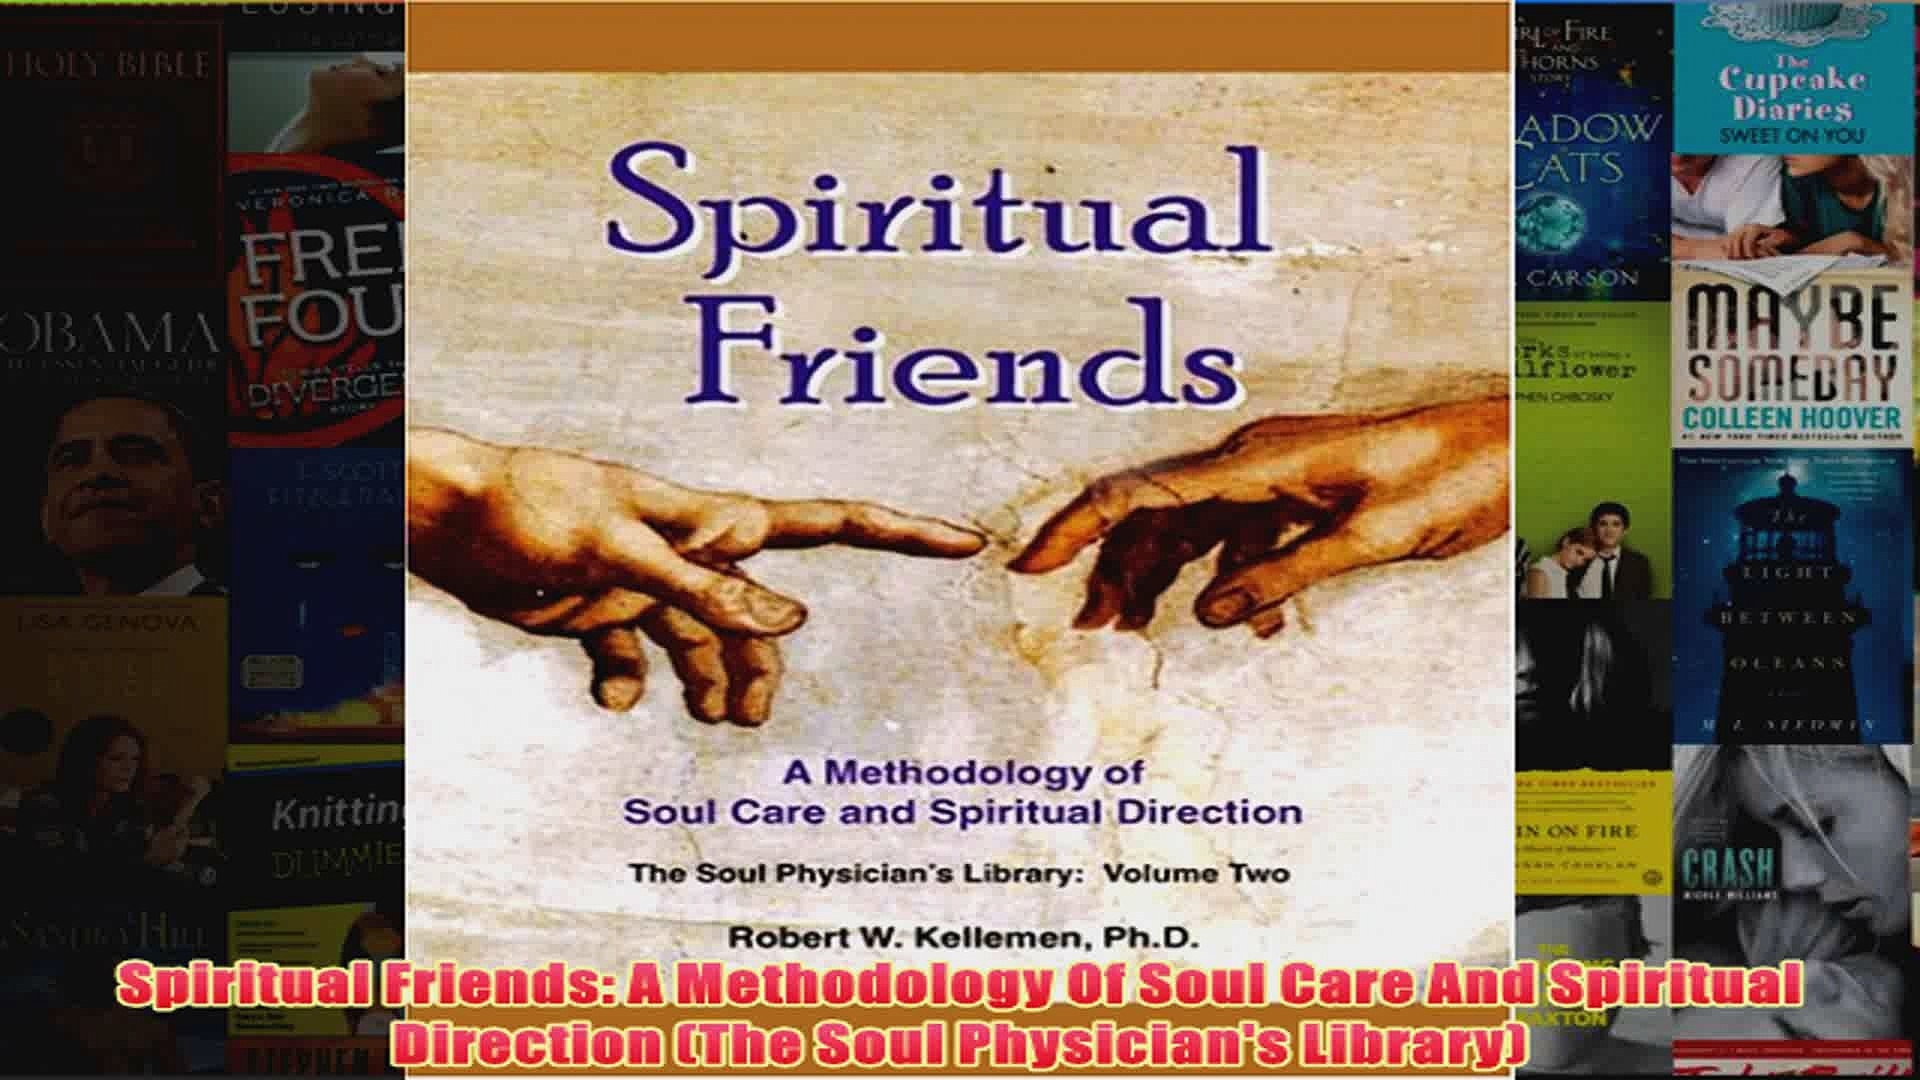 Spiritual Friends A Methodology Of Soul Care And Spiritual Direction The Soul